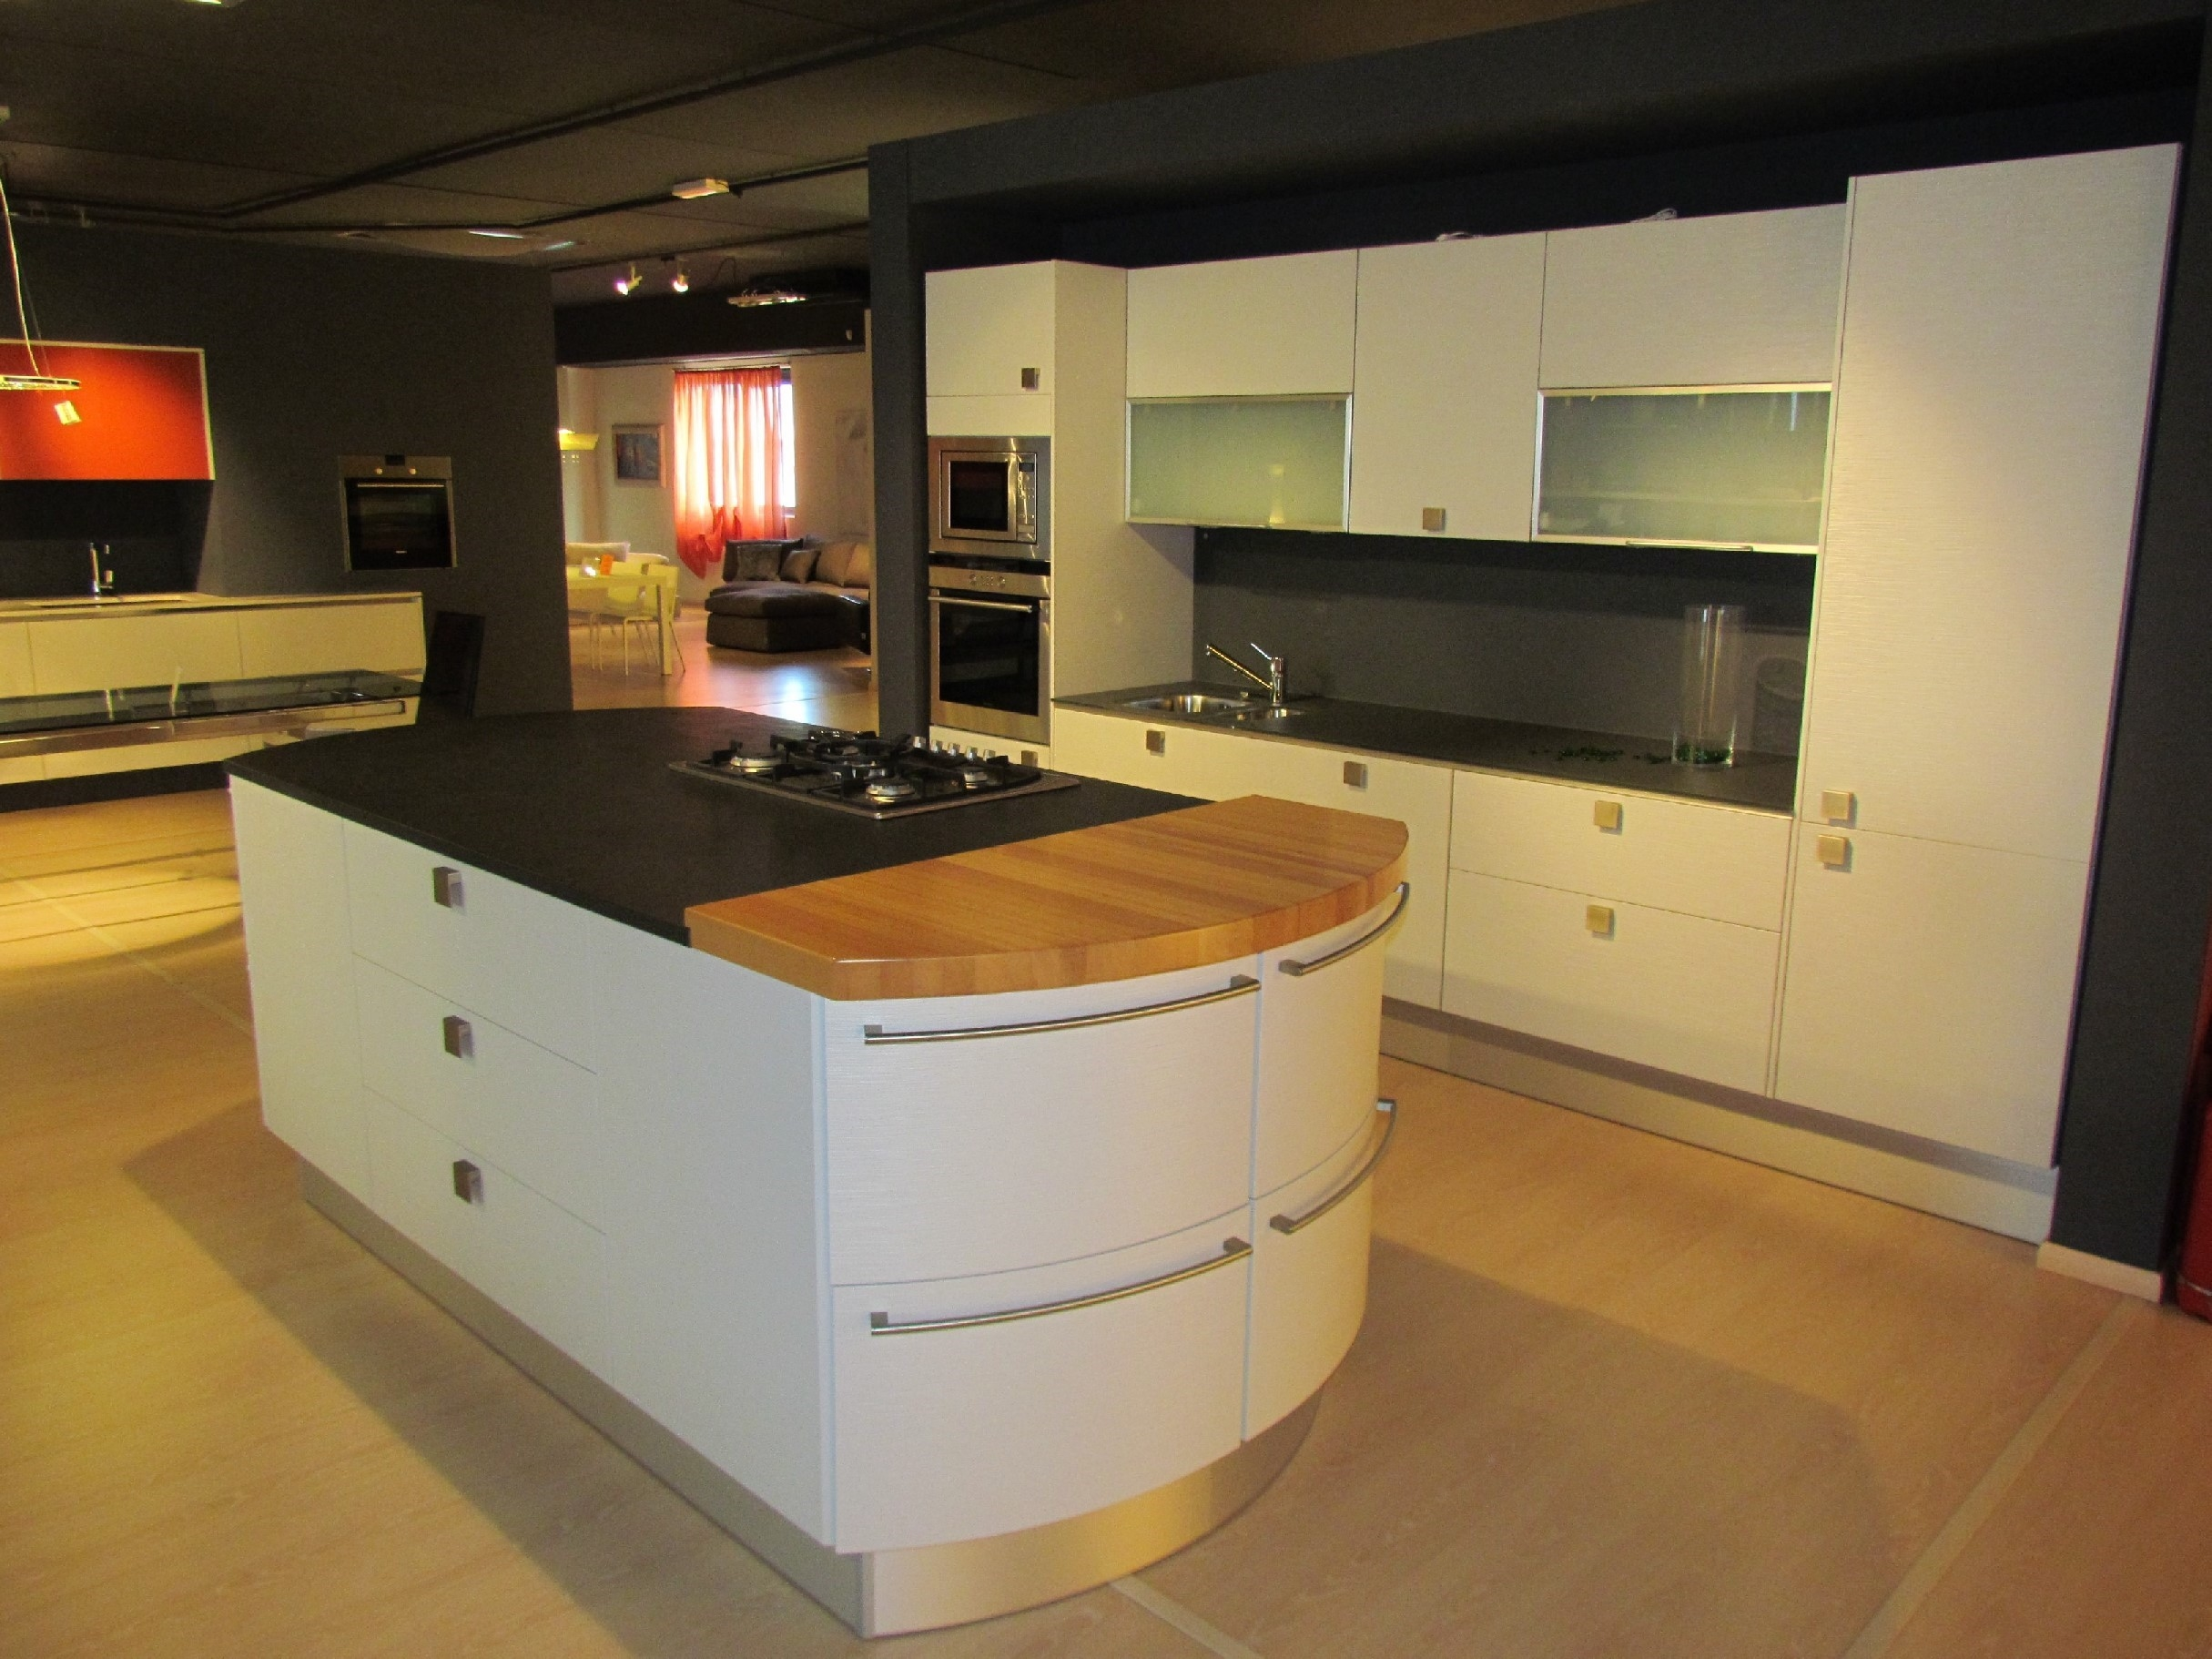 Best Cucine Boffi In Offerta Images - Ideas & Design 2017 ...